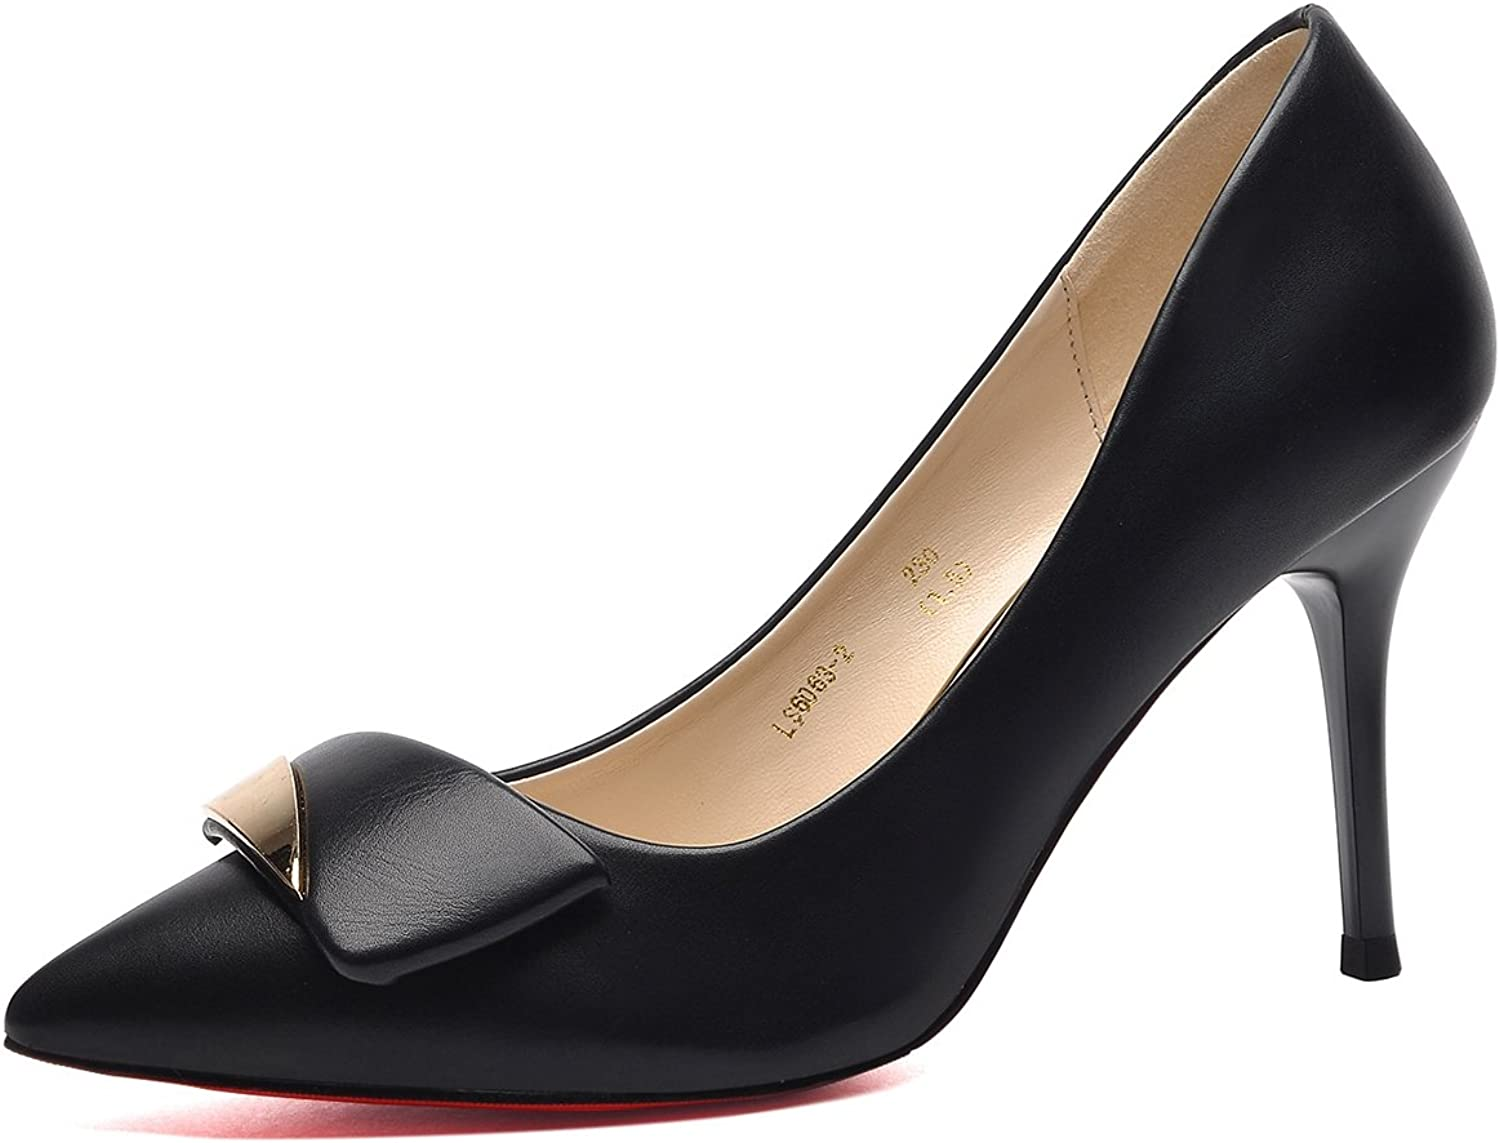 FOXSENSE Leather Stiletto Pointed Shallow Mouth Female 3.4' High Heels Single shoes